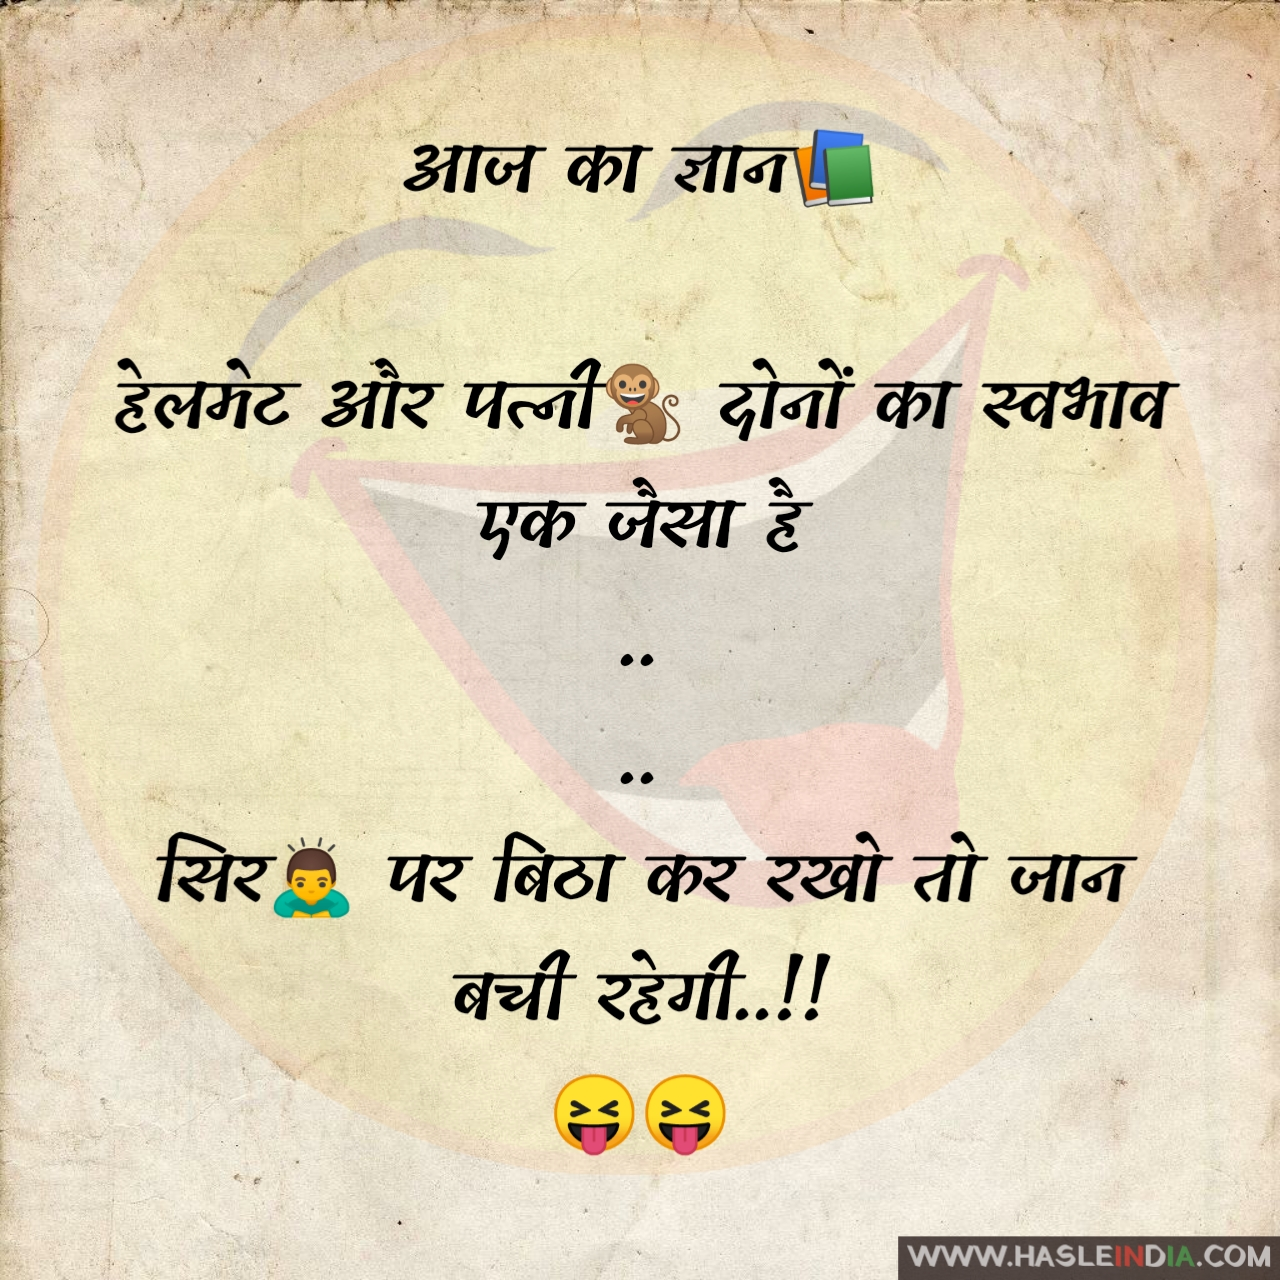 pati patni jokes, पति-पत्नी jokes, husband wife jokes, funny hindi jokes, Hindi jokes, hindi chutkule, hindi joke sms, hindi jokes images, Hasle india,